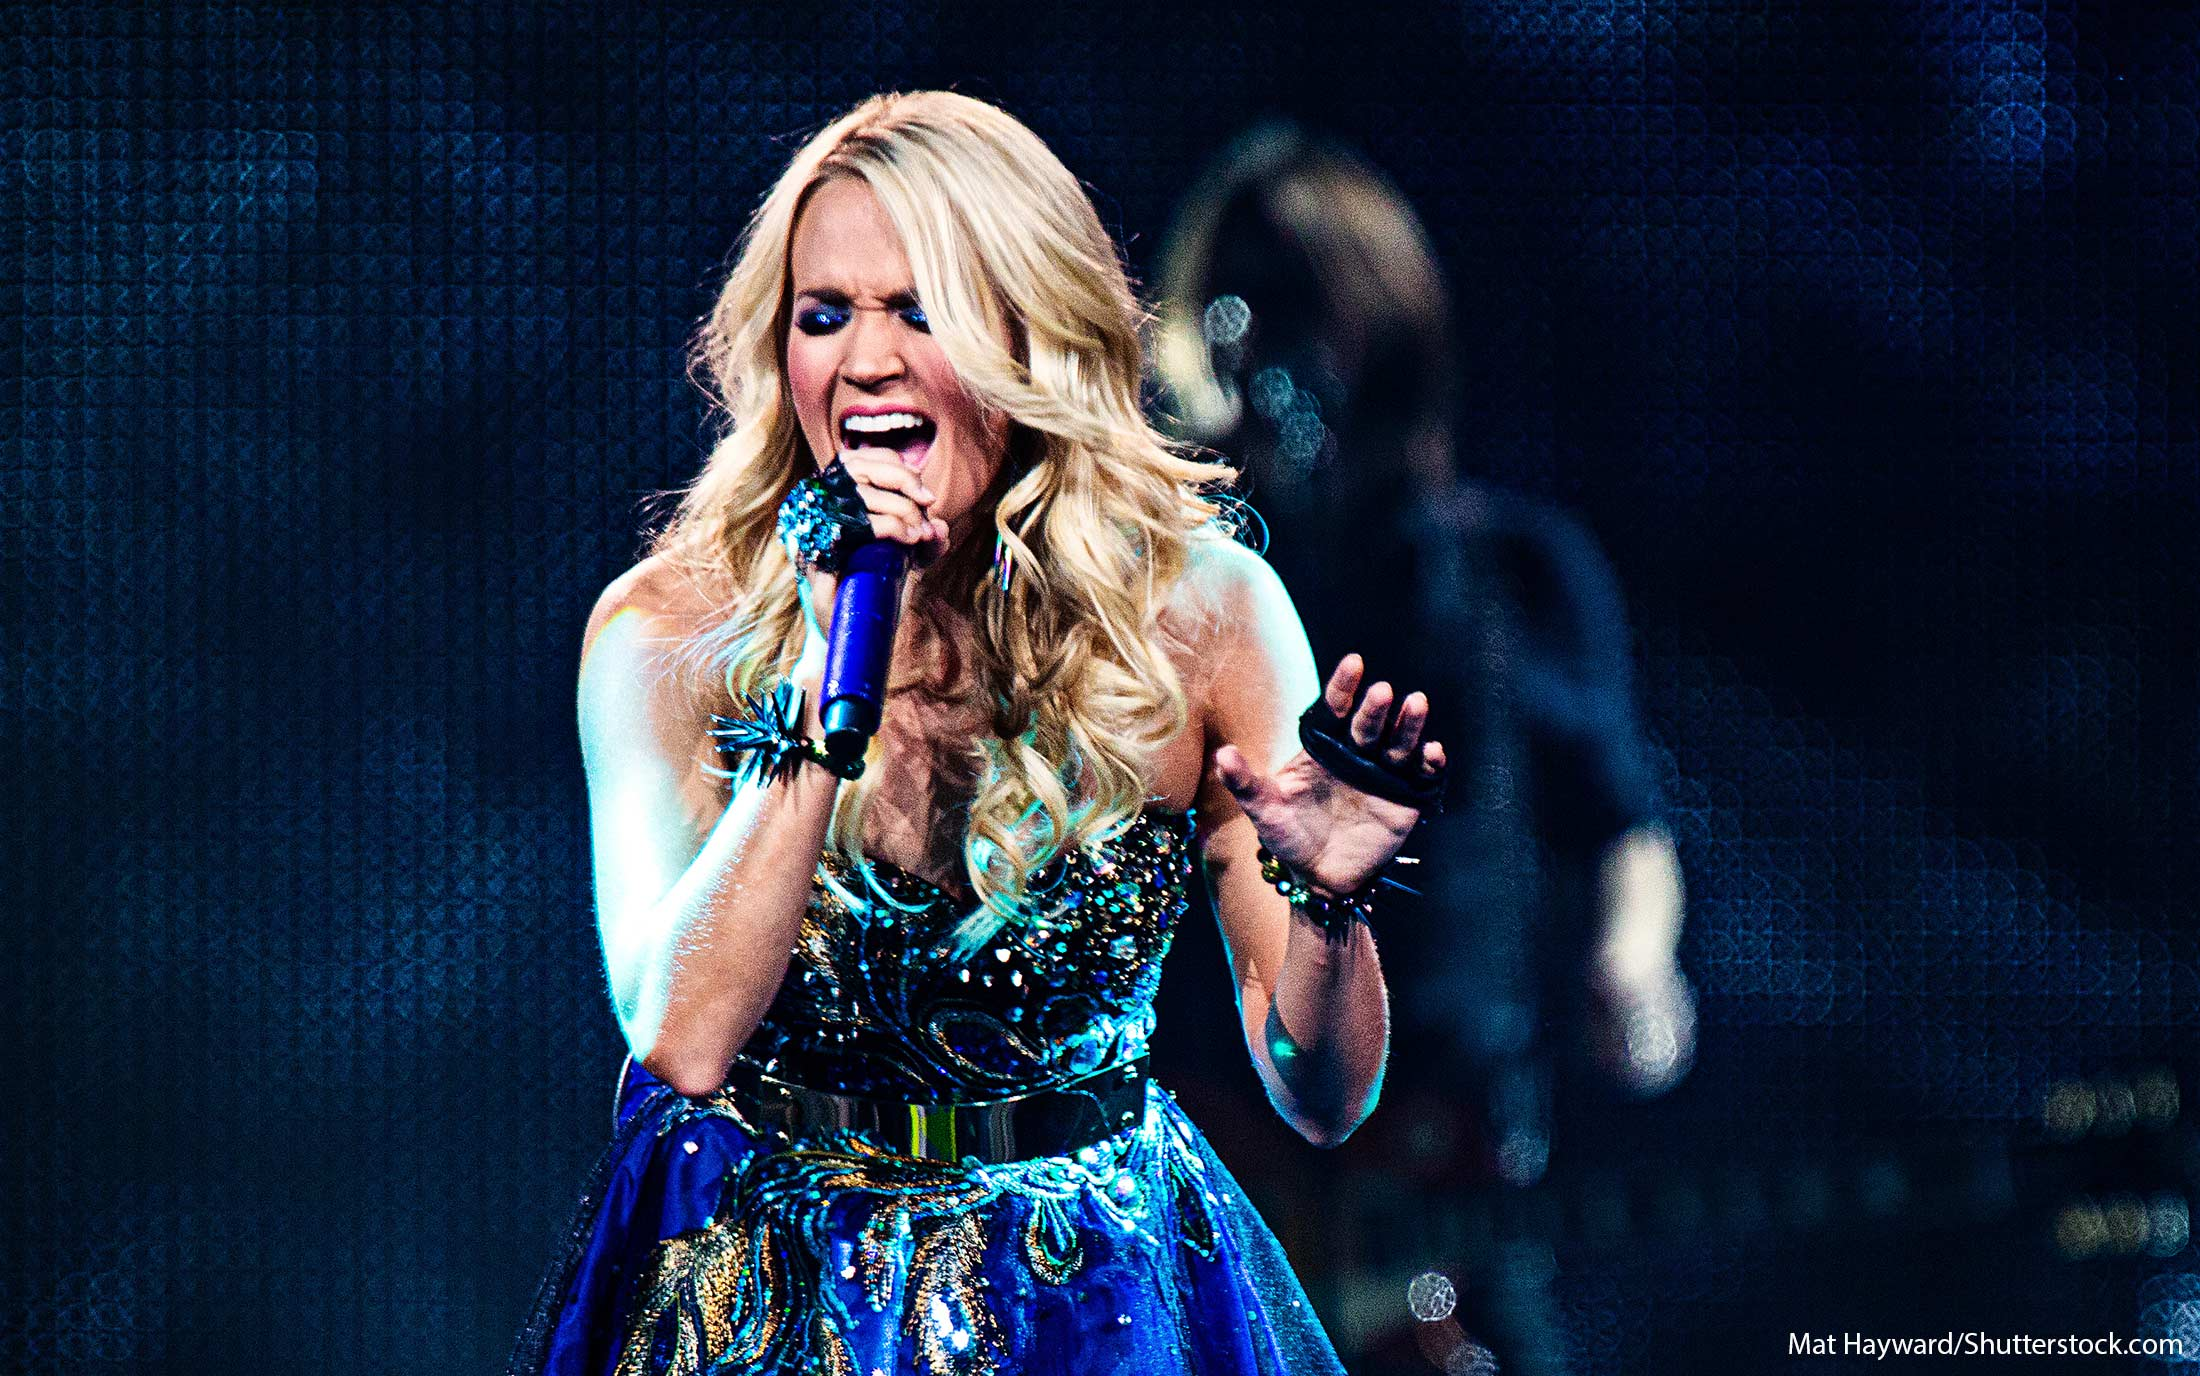 CMT Music Awards 2016, Carrie Underwood